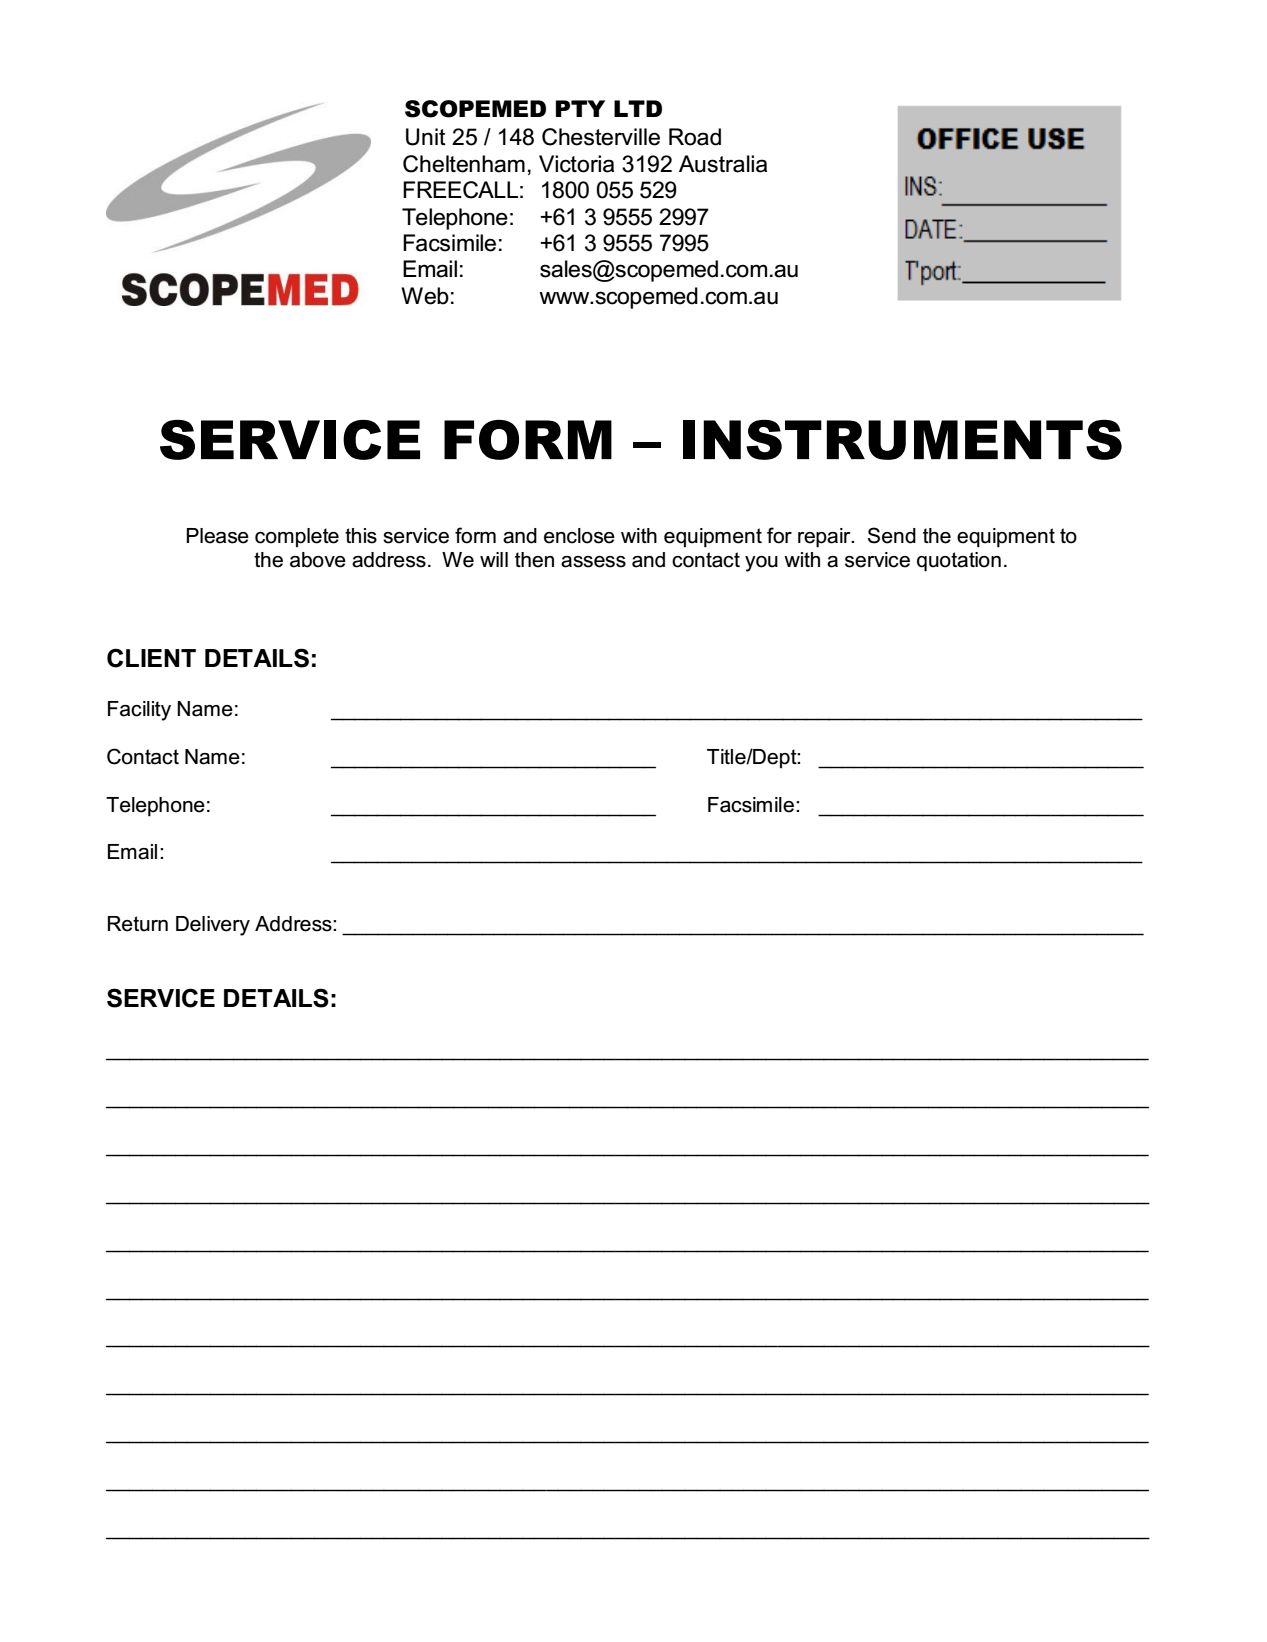 Service Form